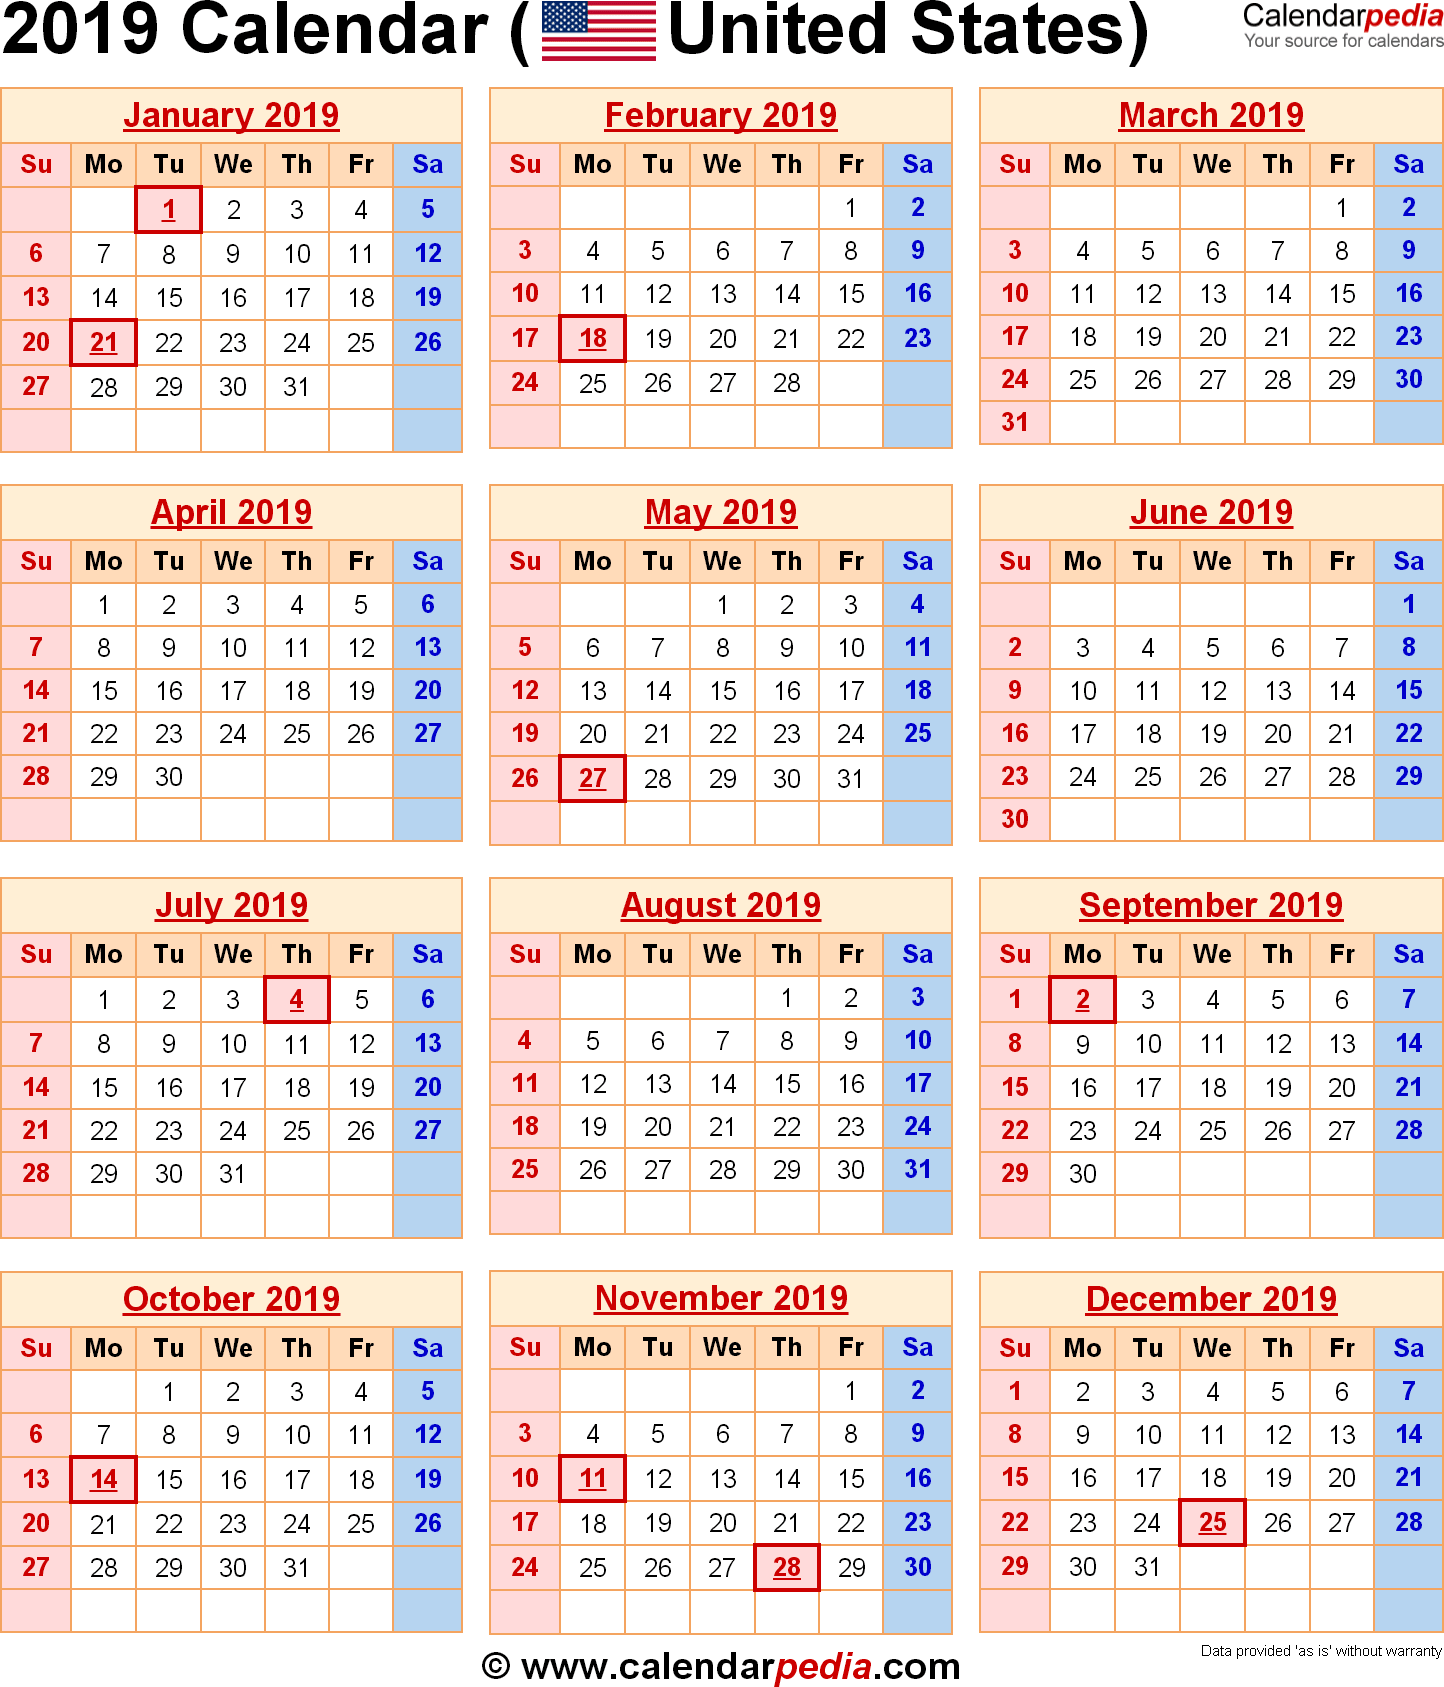 Year 2019 Calendar Usa In 2020 Holiday Calendar Printable Calendar Template Holiday Calendar